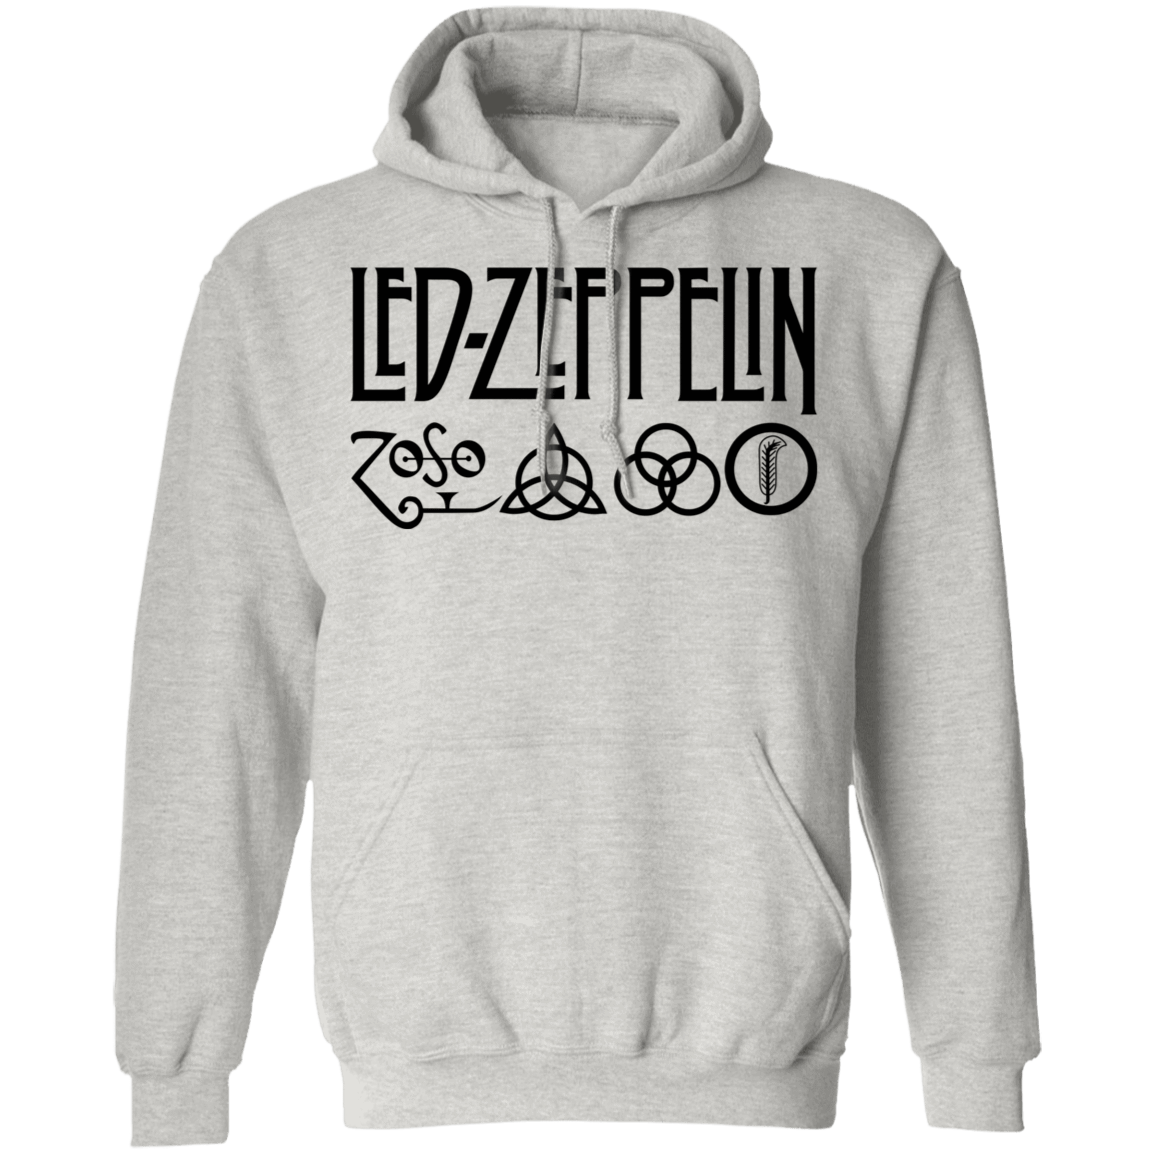 Harry Yellow Led Zeppelin 50th Anniversary T-Shirts, Hoodies, Tank 541-4748-79345119-23071 - Tee Ript